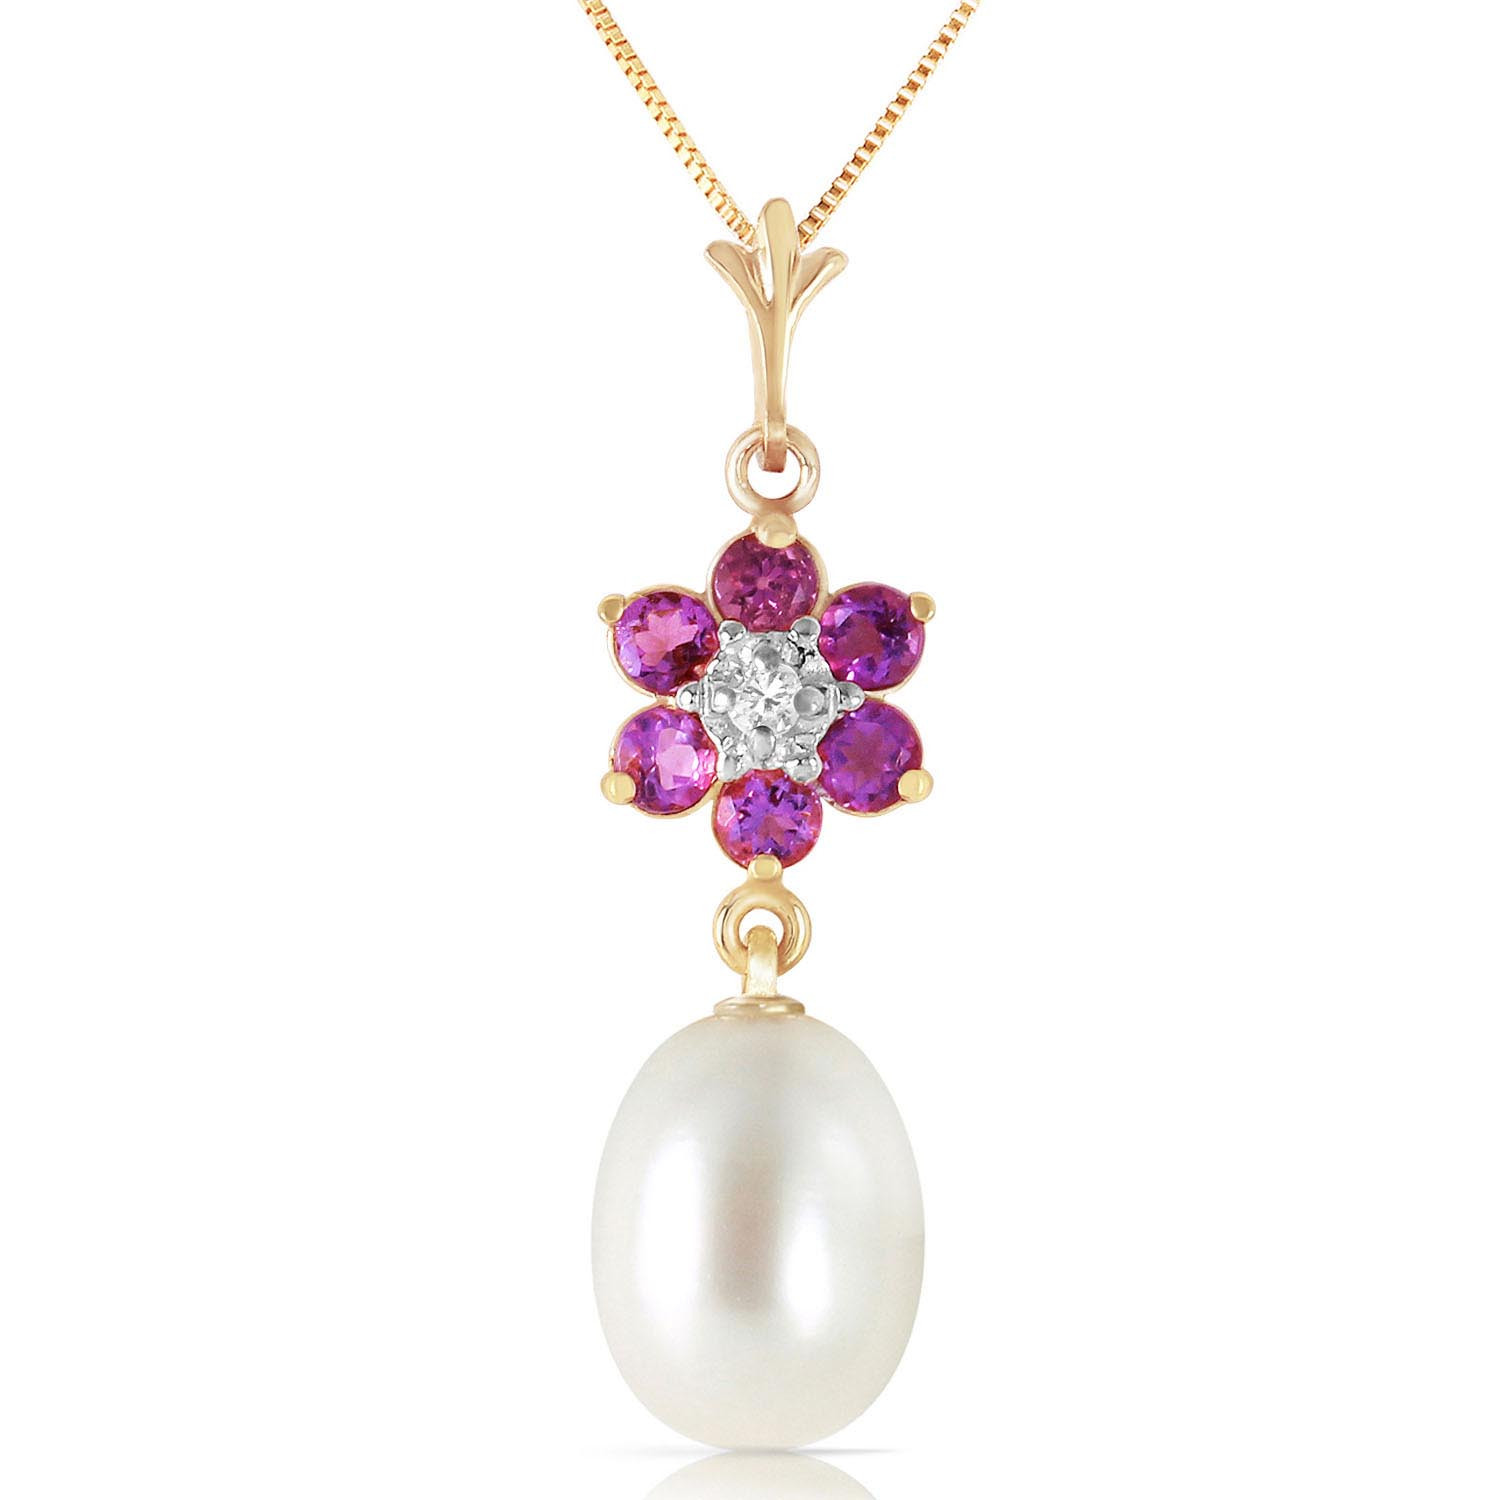 Pearl, Amethyst & Diamond Daisy Pendant Necklace in 9ct Gold